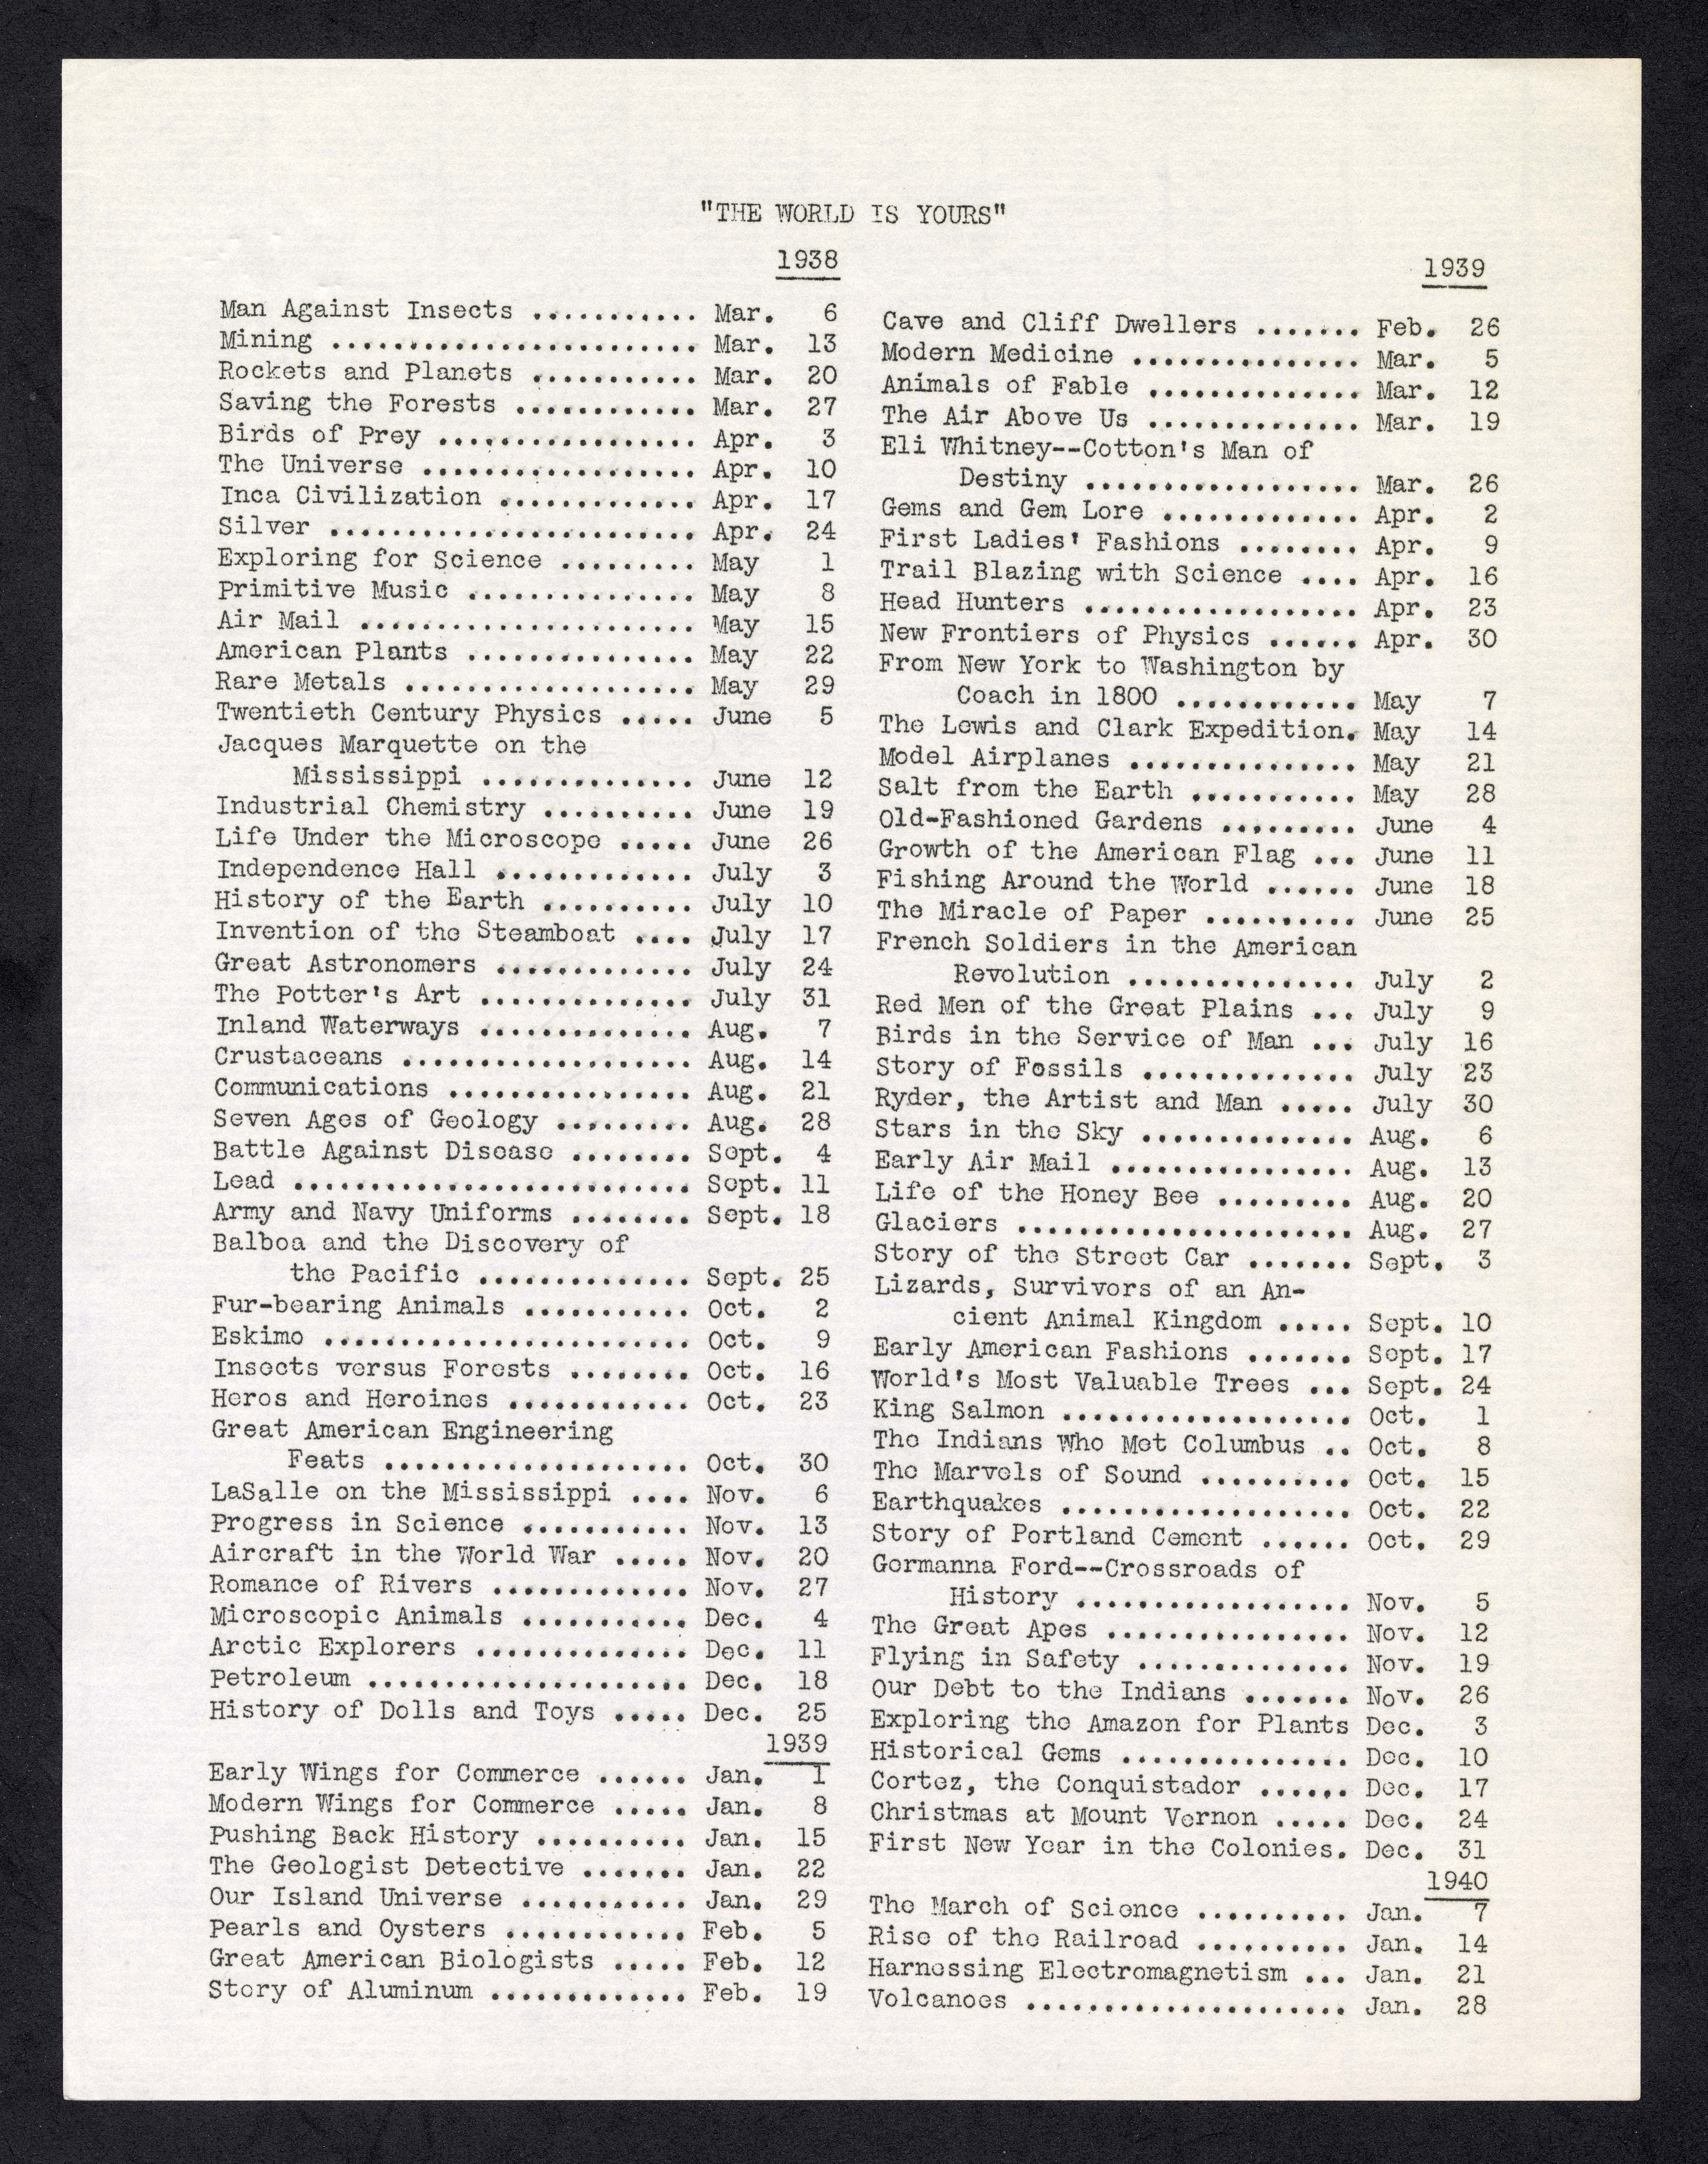 List of episode topics with months and dates aired from March 1938 to January 1940.